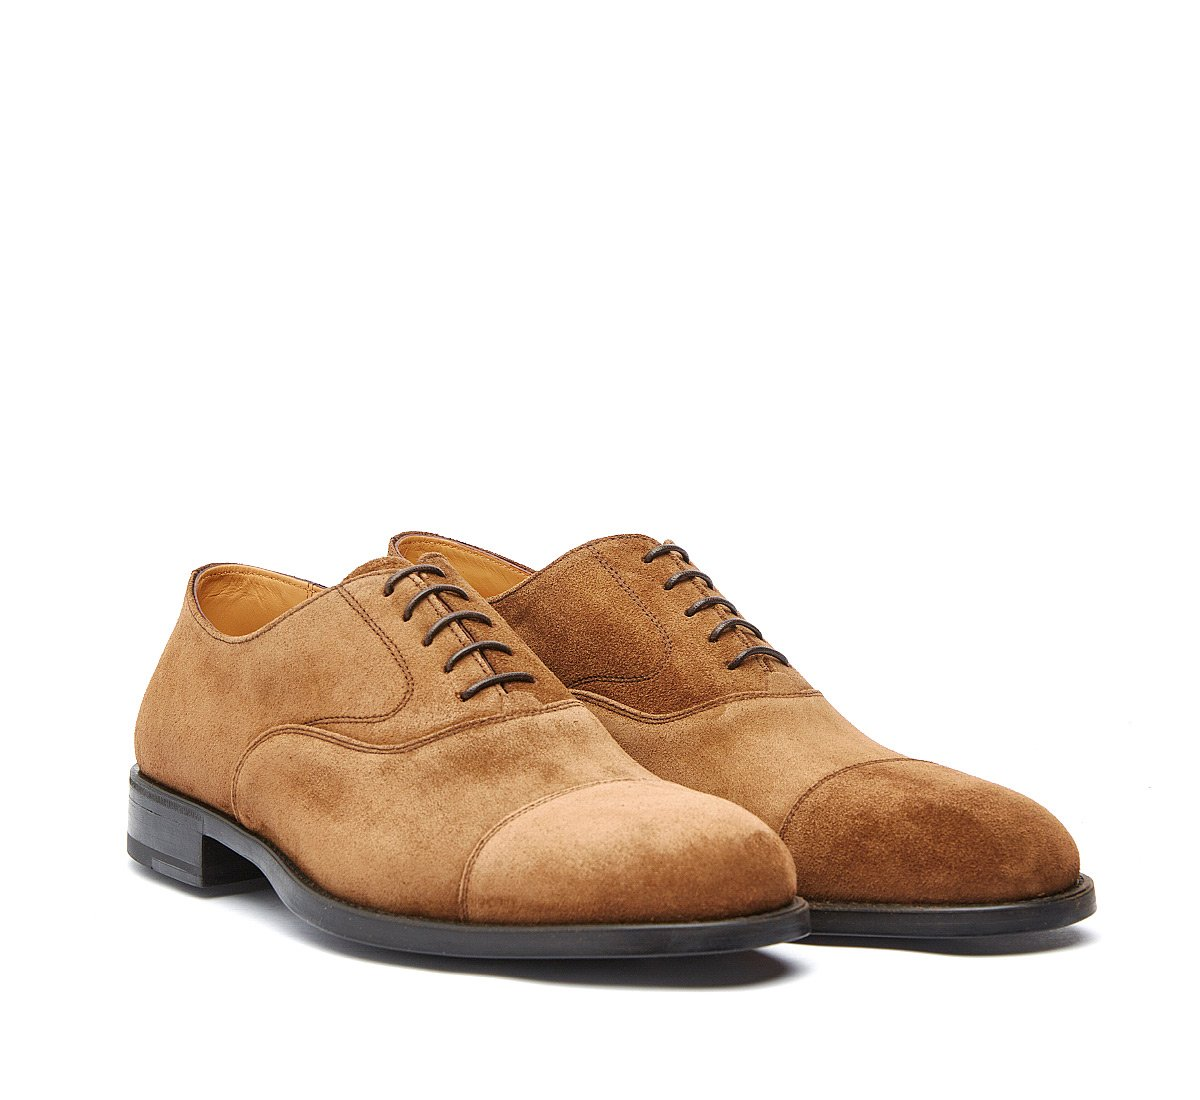 Oxford shoe in suede